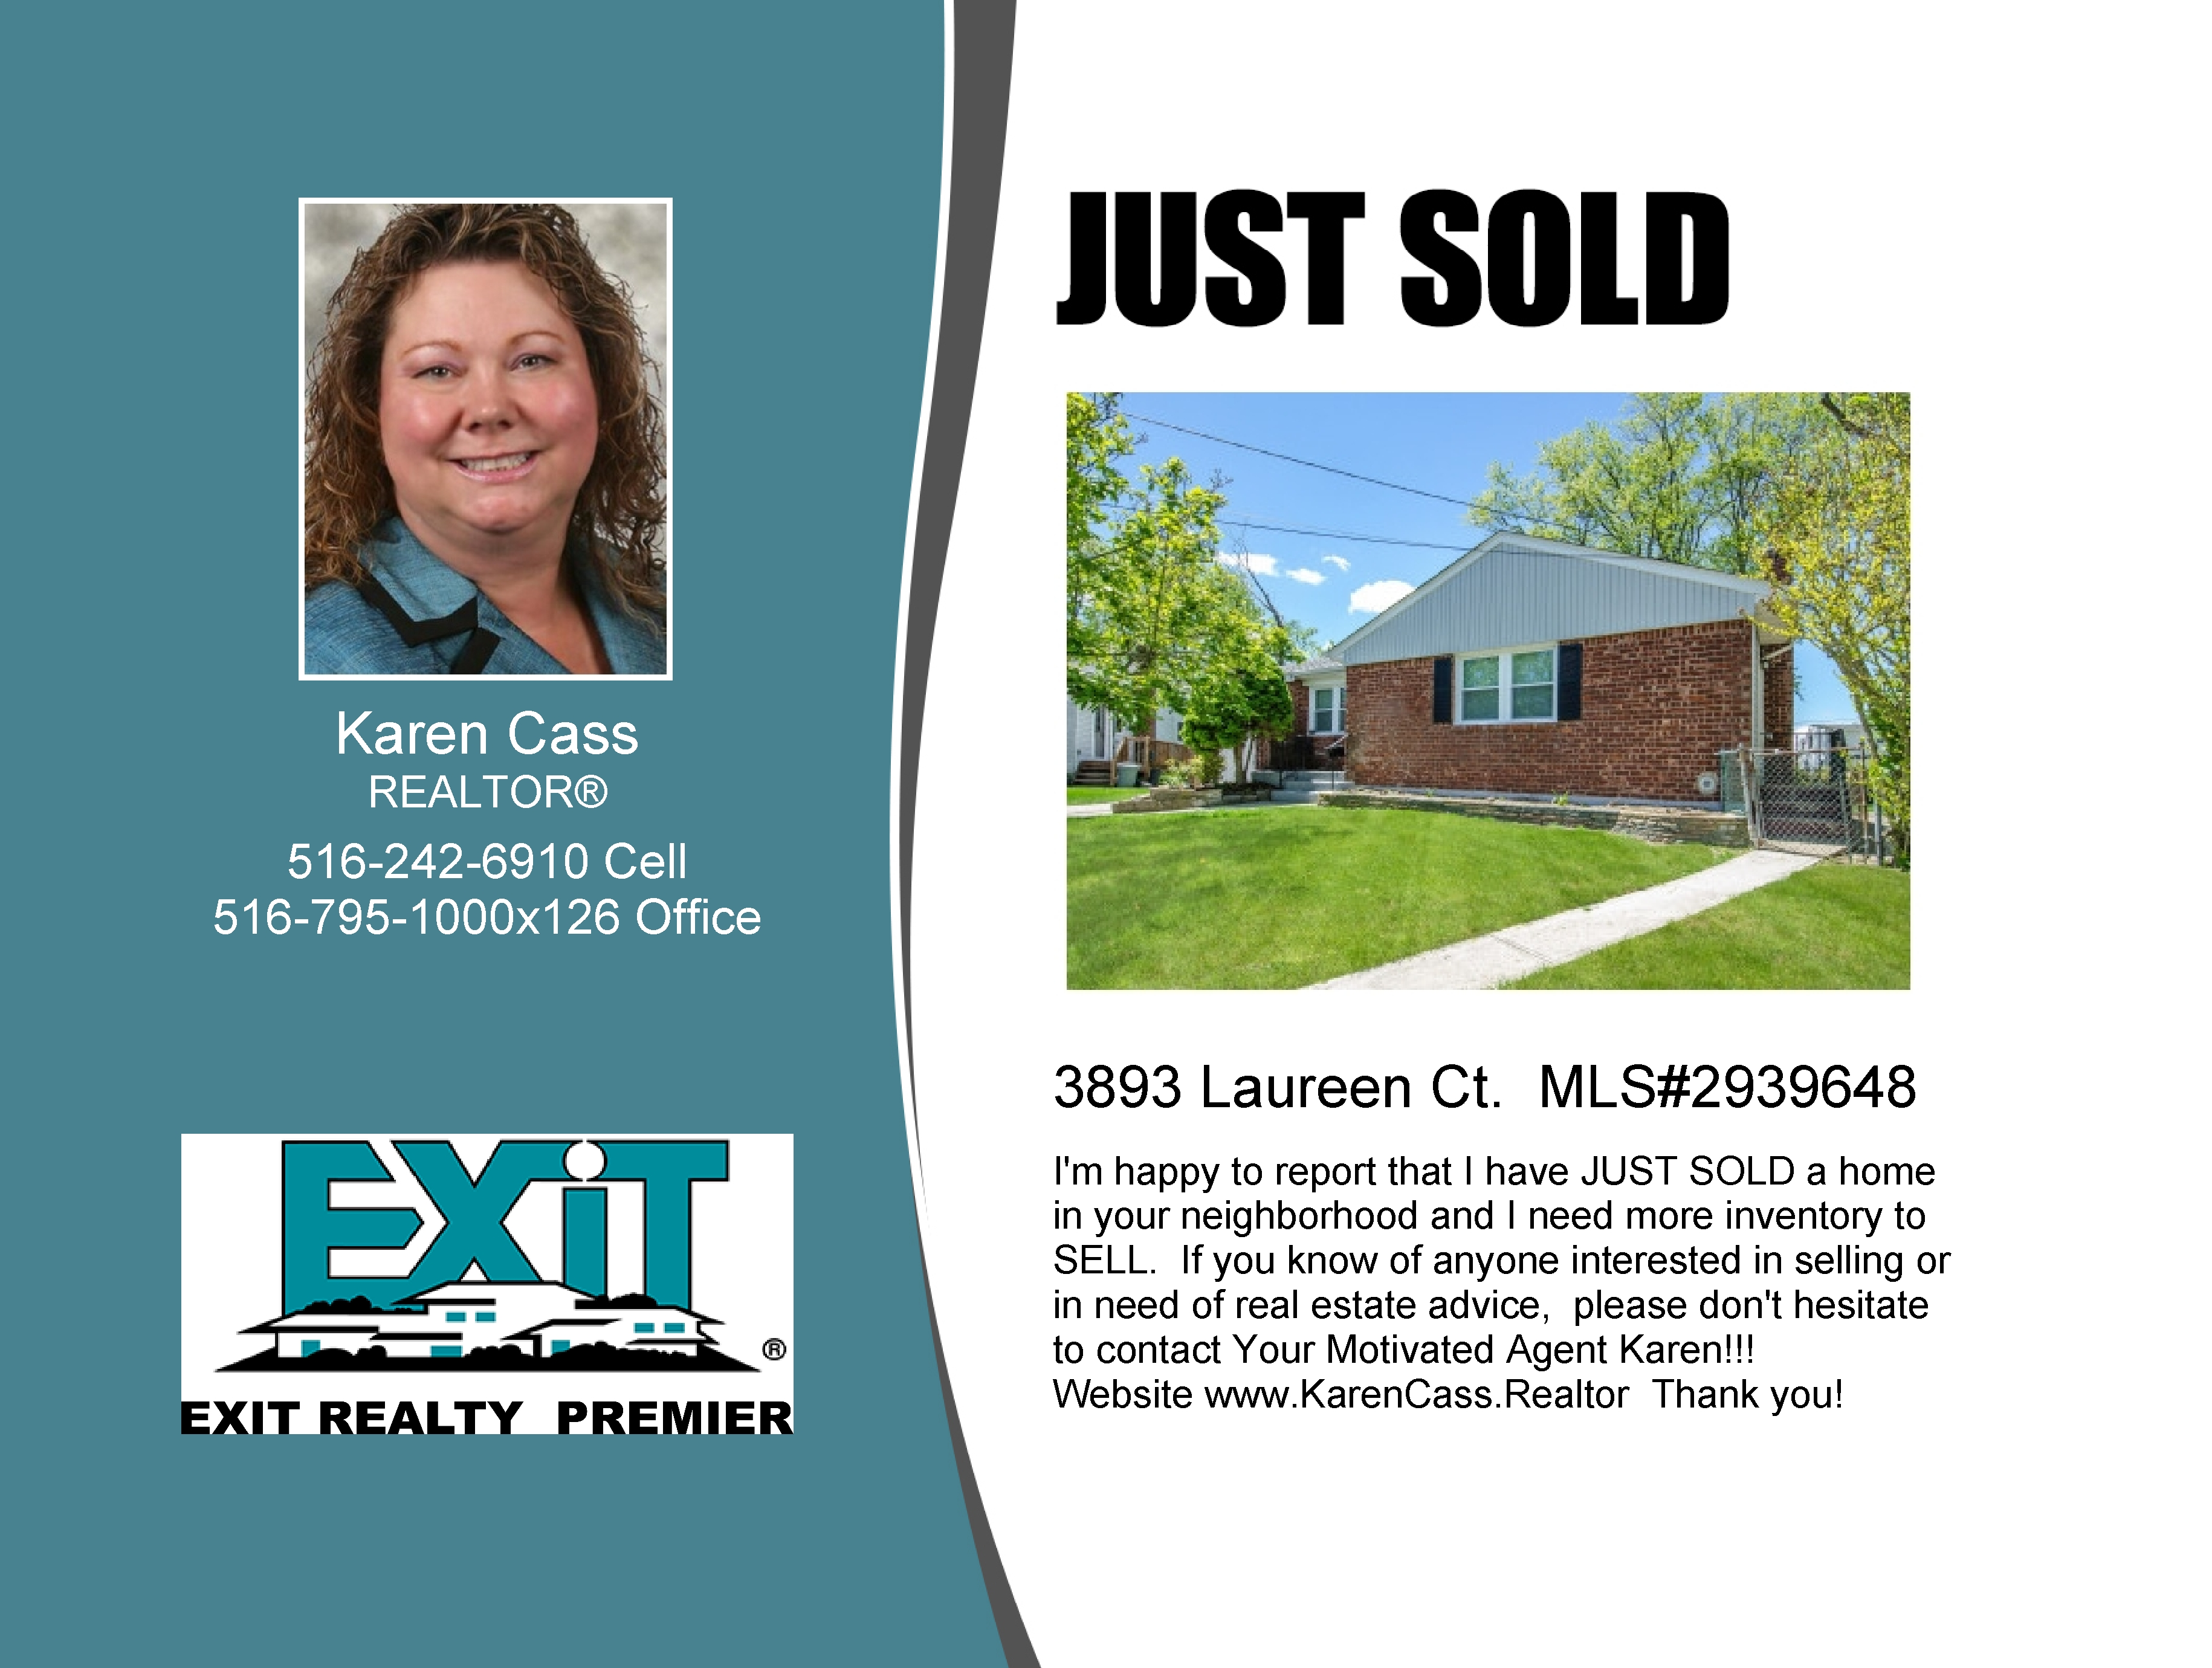 JUST SOLD - Seaford Renovated Ranch in a Cul-De-Sac !!!